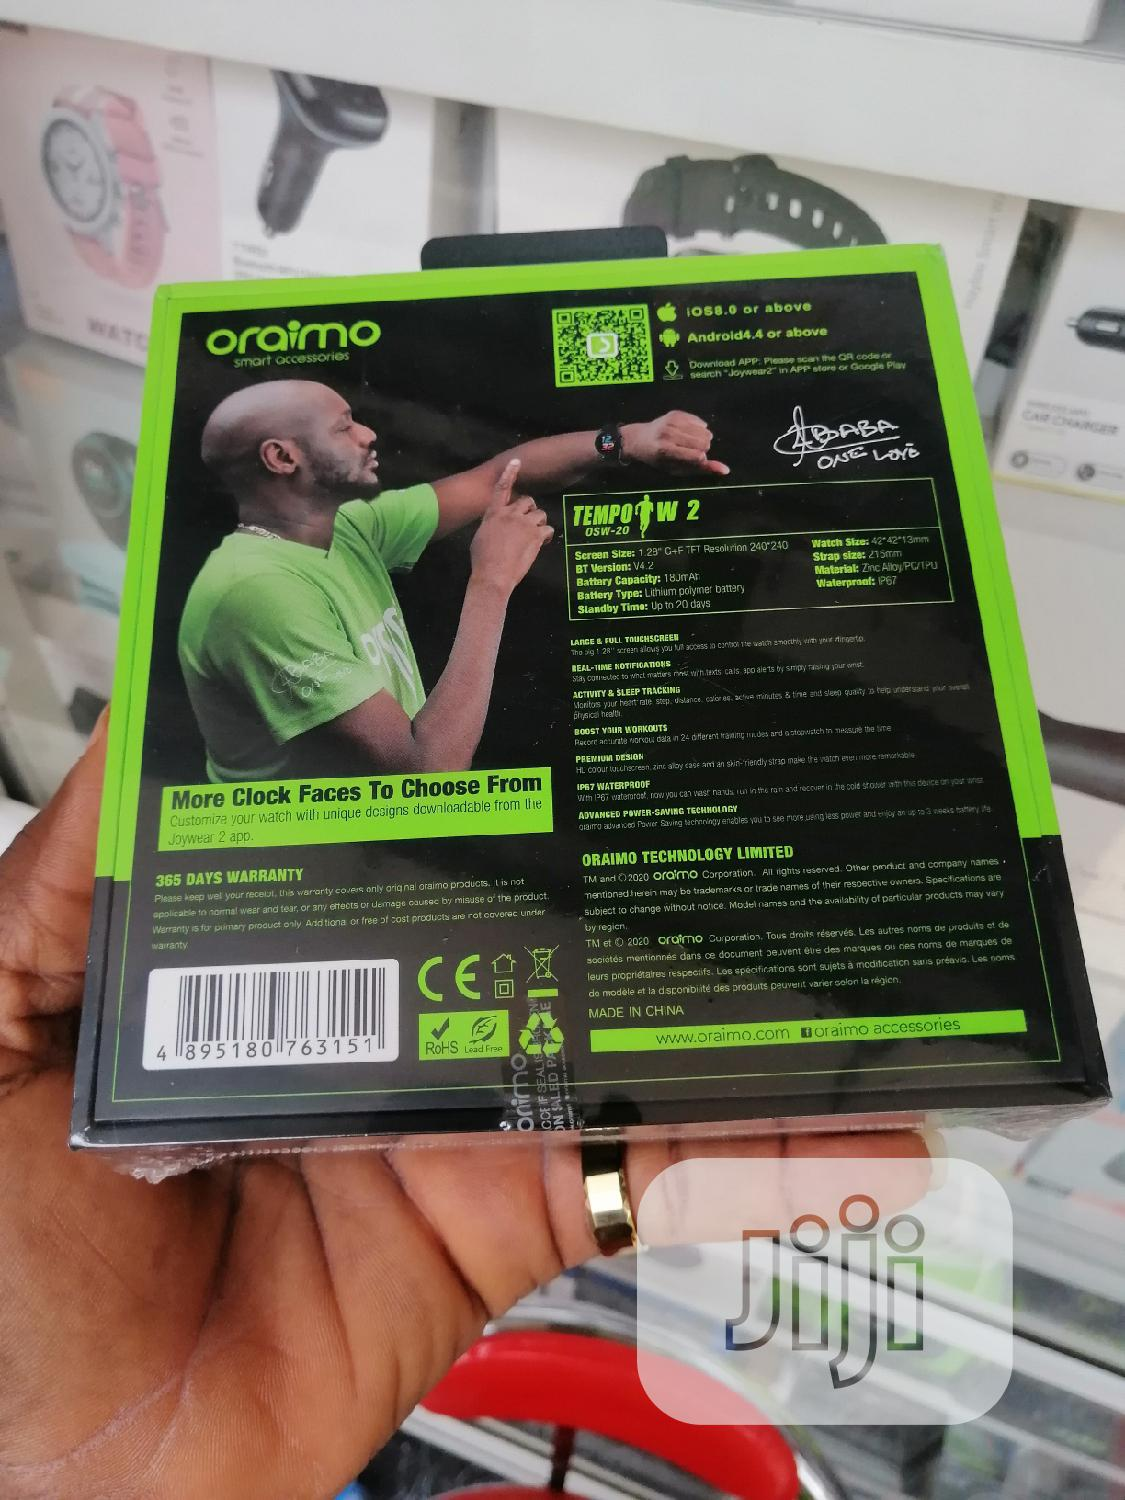 Tempo S W2 Oraimo Smart Watch OSW-20 | Smart Watches & Trackers for sale in Ikeja, Lagos State, Nigeria